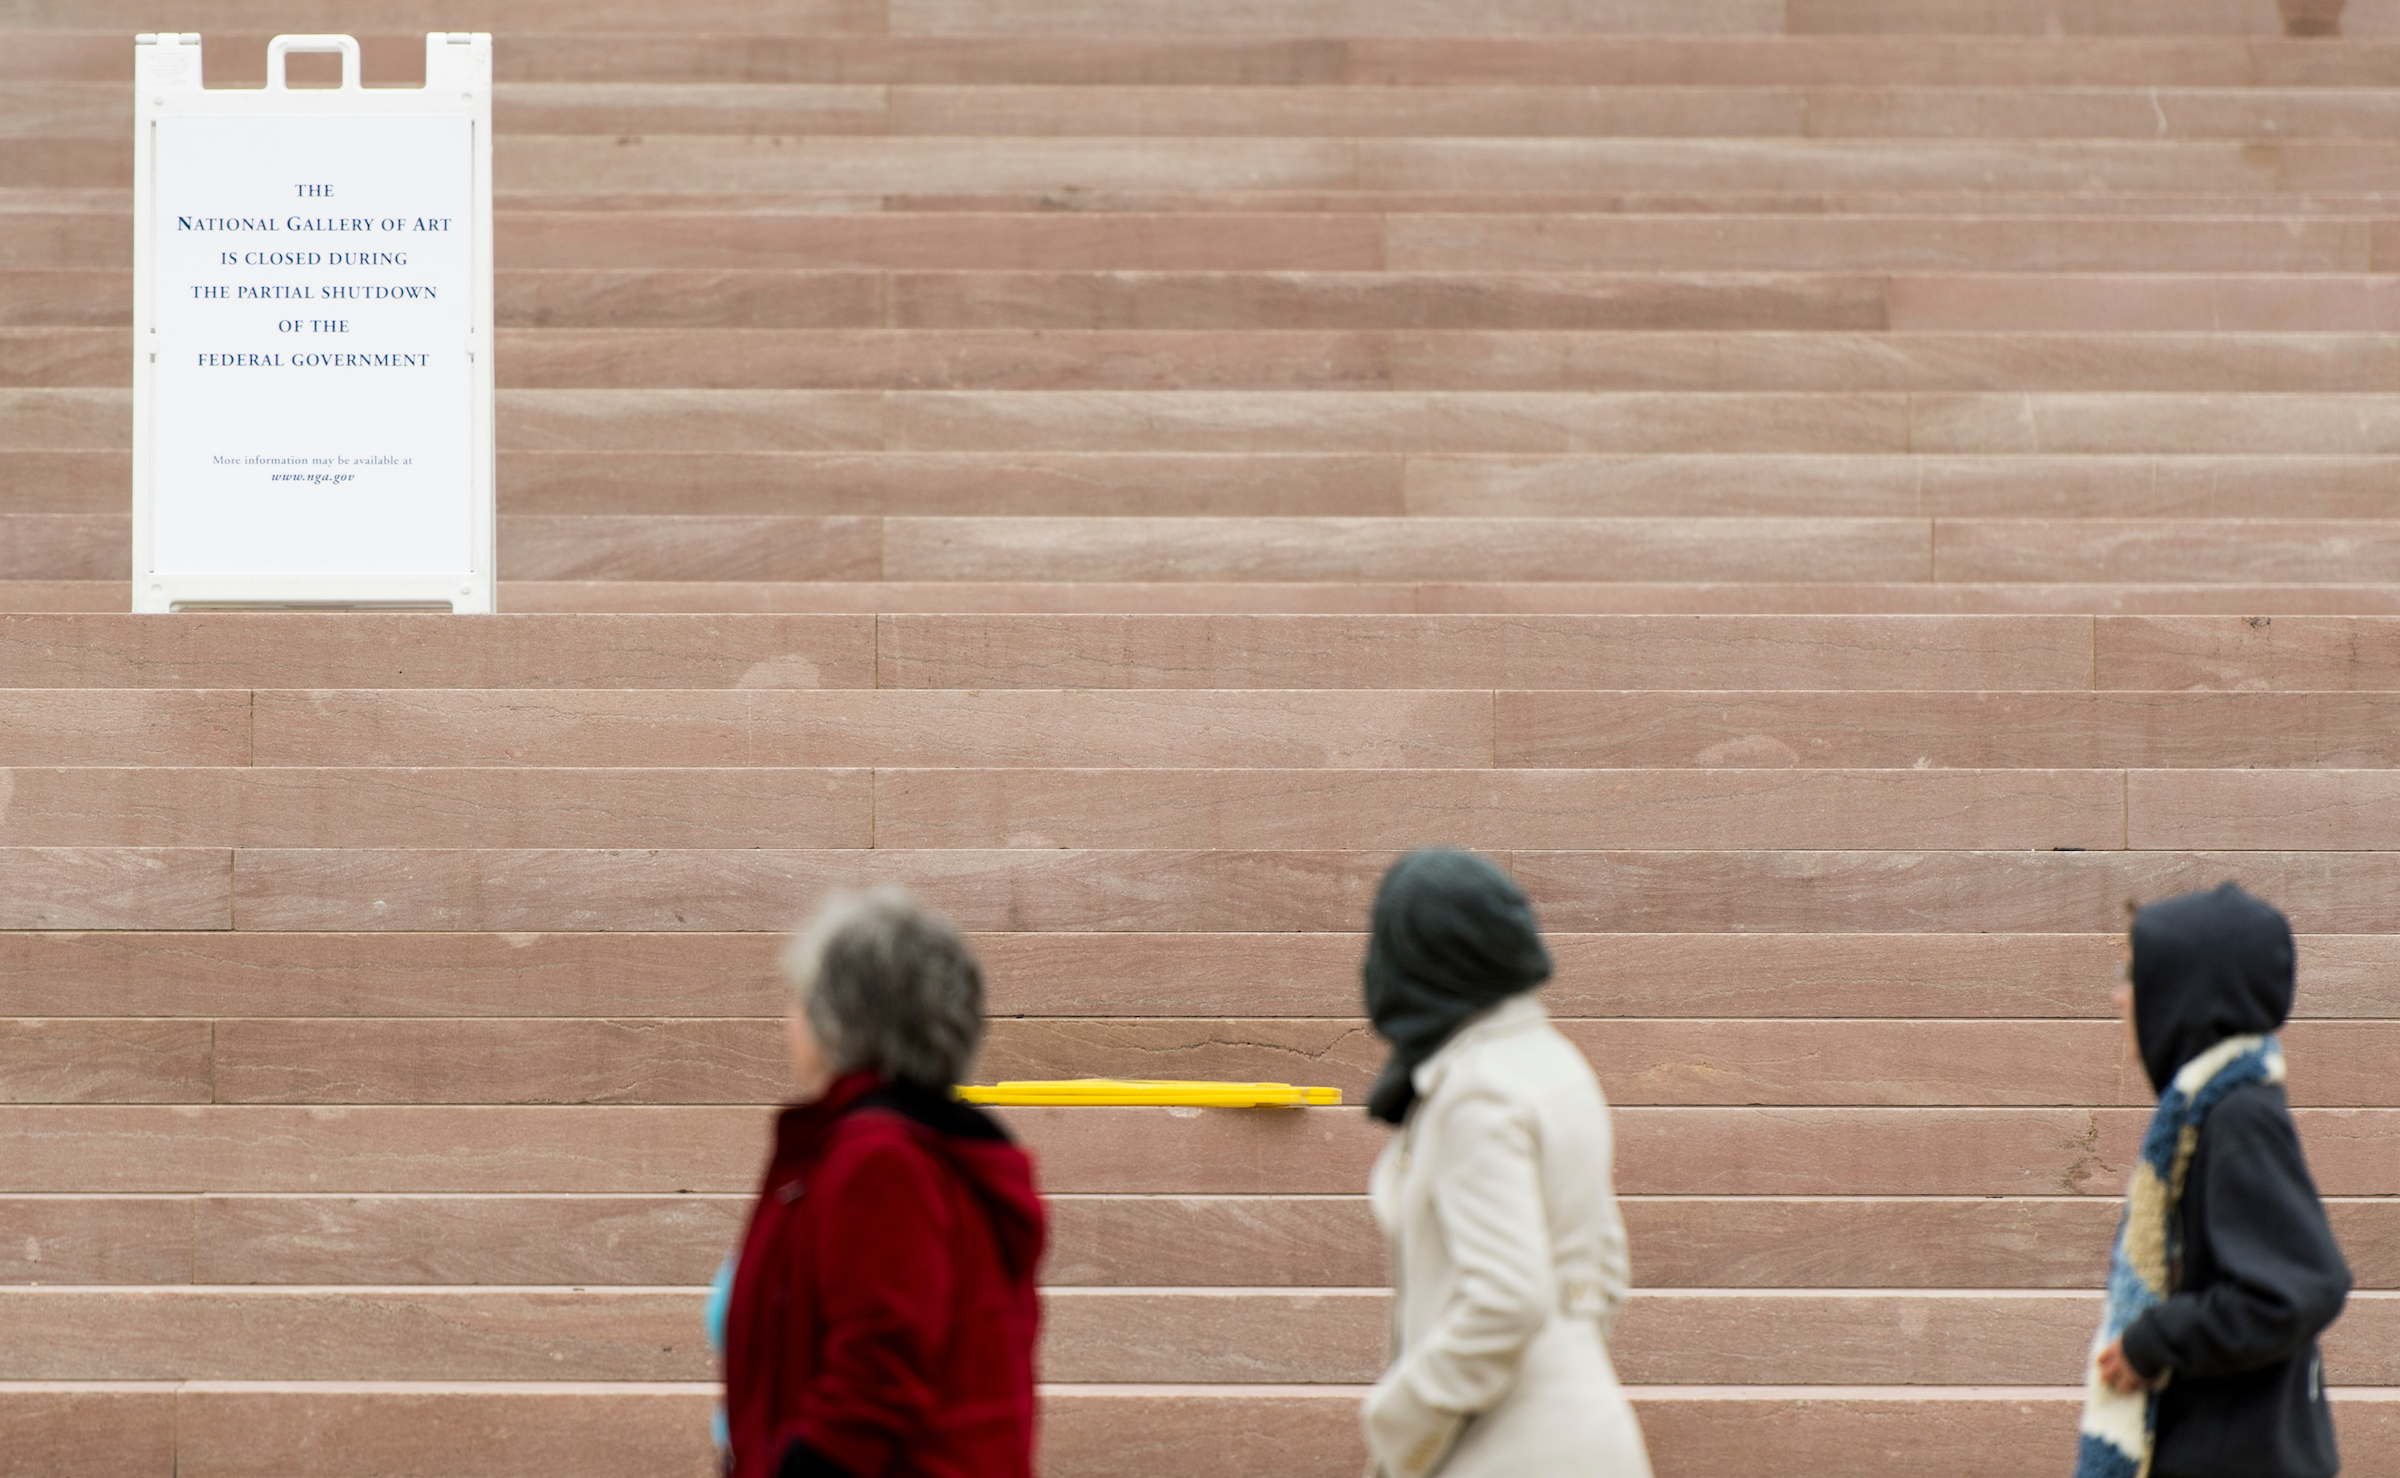 UNITED STATES - JANUARY 7: Tourists walk past a sign announces that the National Gallery of Art is closed due to the partial government shut down on Monday, Jan. 7, 2019. The standoff between President Trump and Congress over a spending package to fund nine government agencies reached its 17th day Monday, making this shut down the third-longest on record. (Photo By Bill Clark/CQ Roll Call)